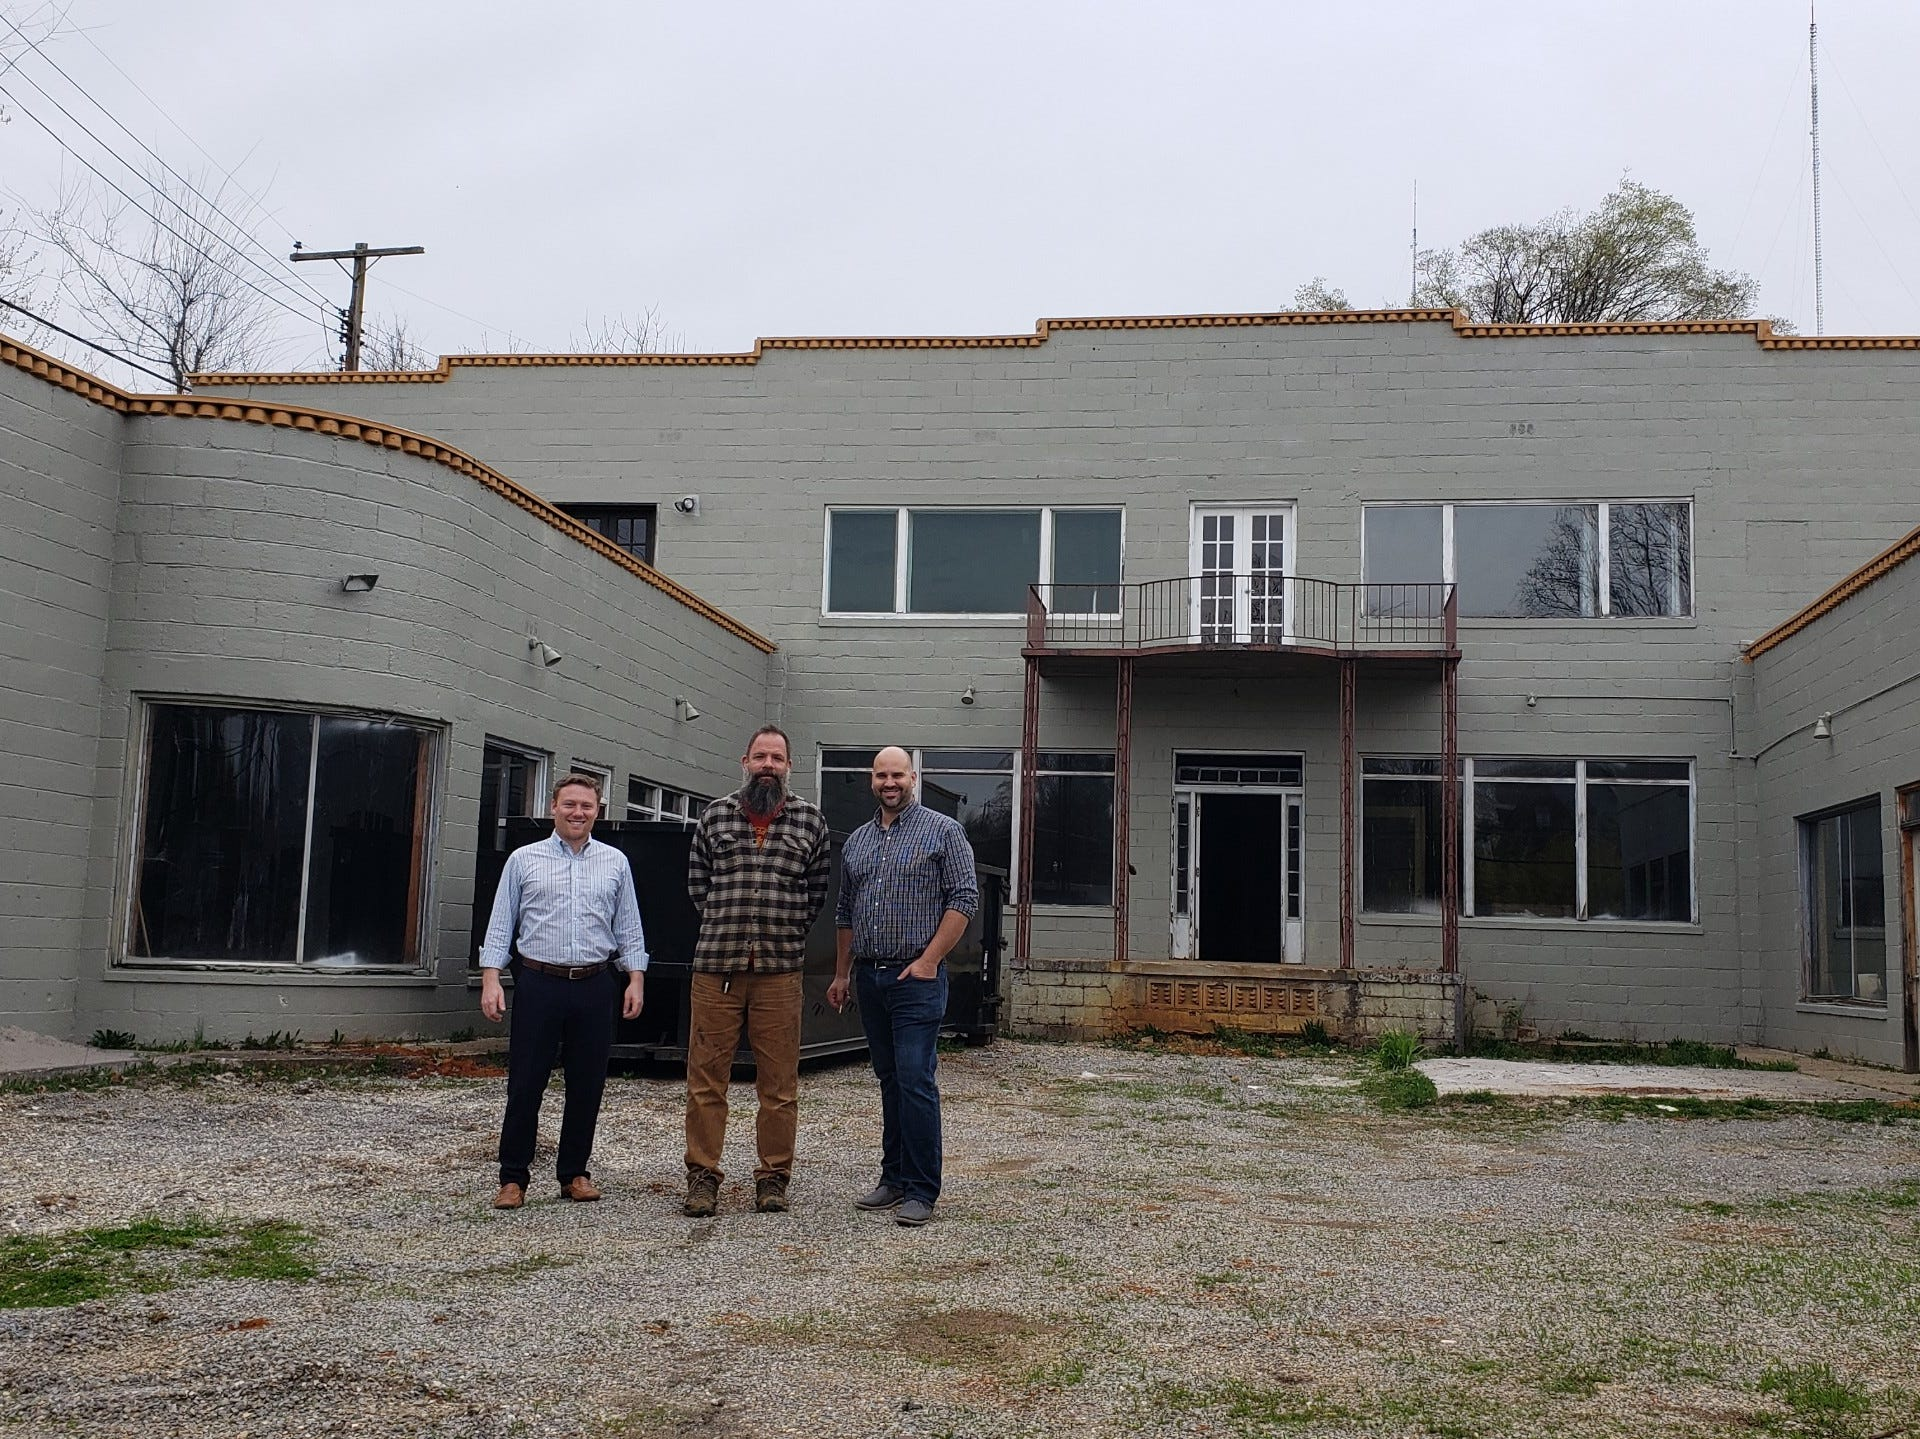 Tyler Fogarty, Jay McNabb and Luke Kendziorski, part owners of the Taggart Building on North Broadway, are shown in its courtyard.